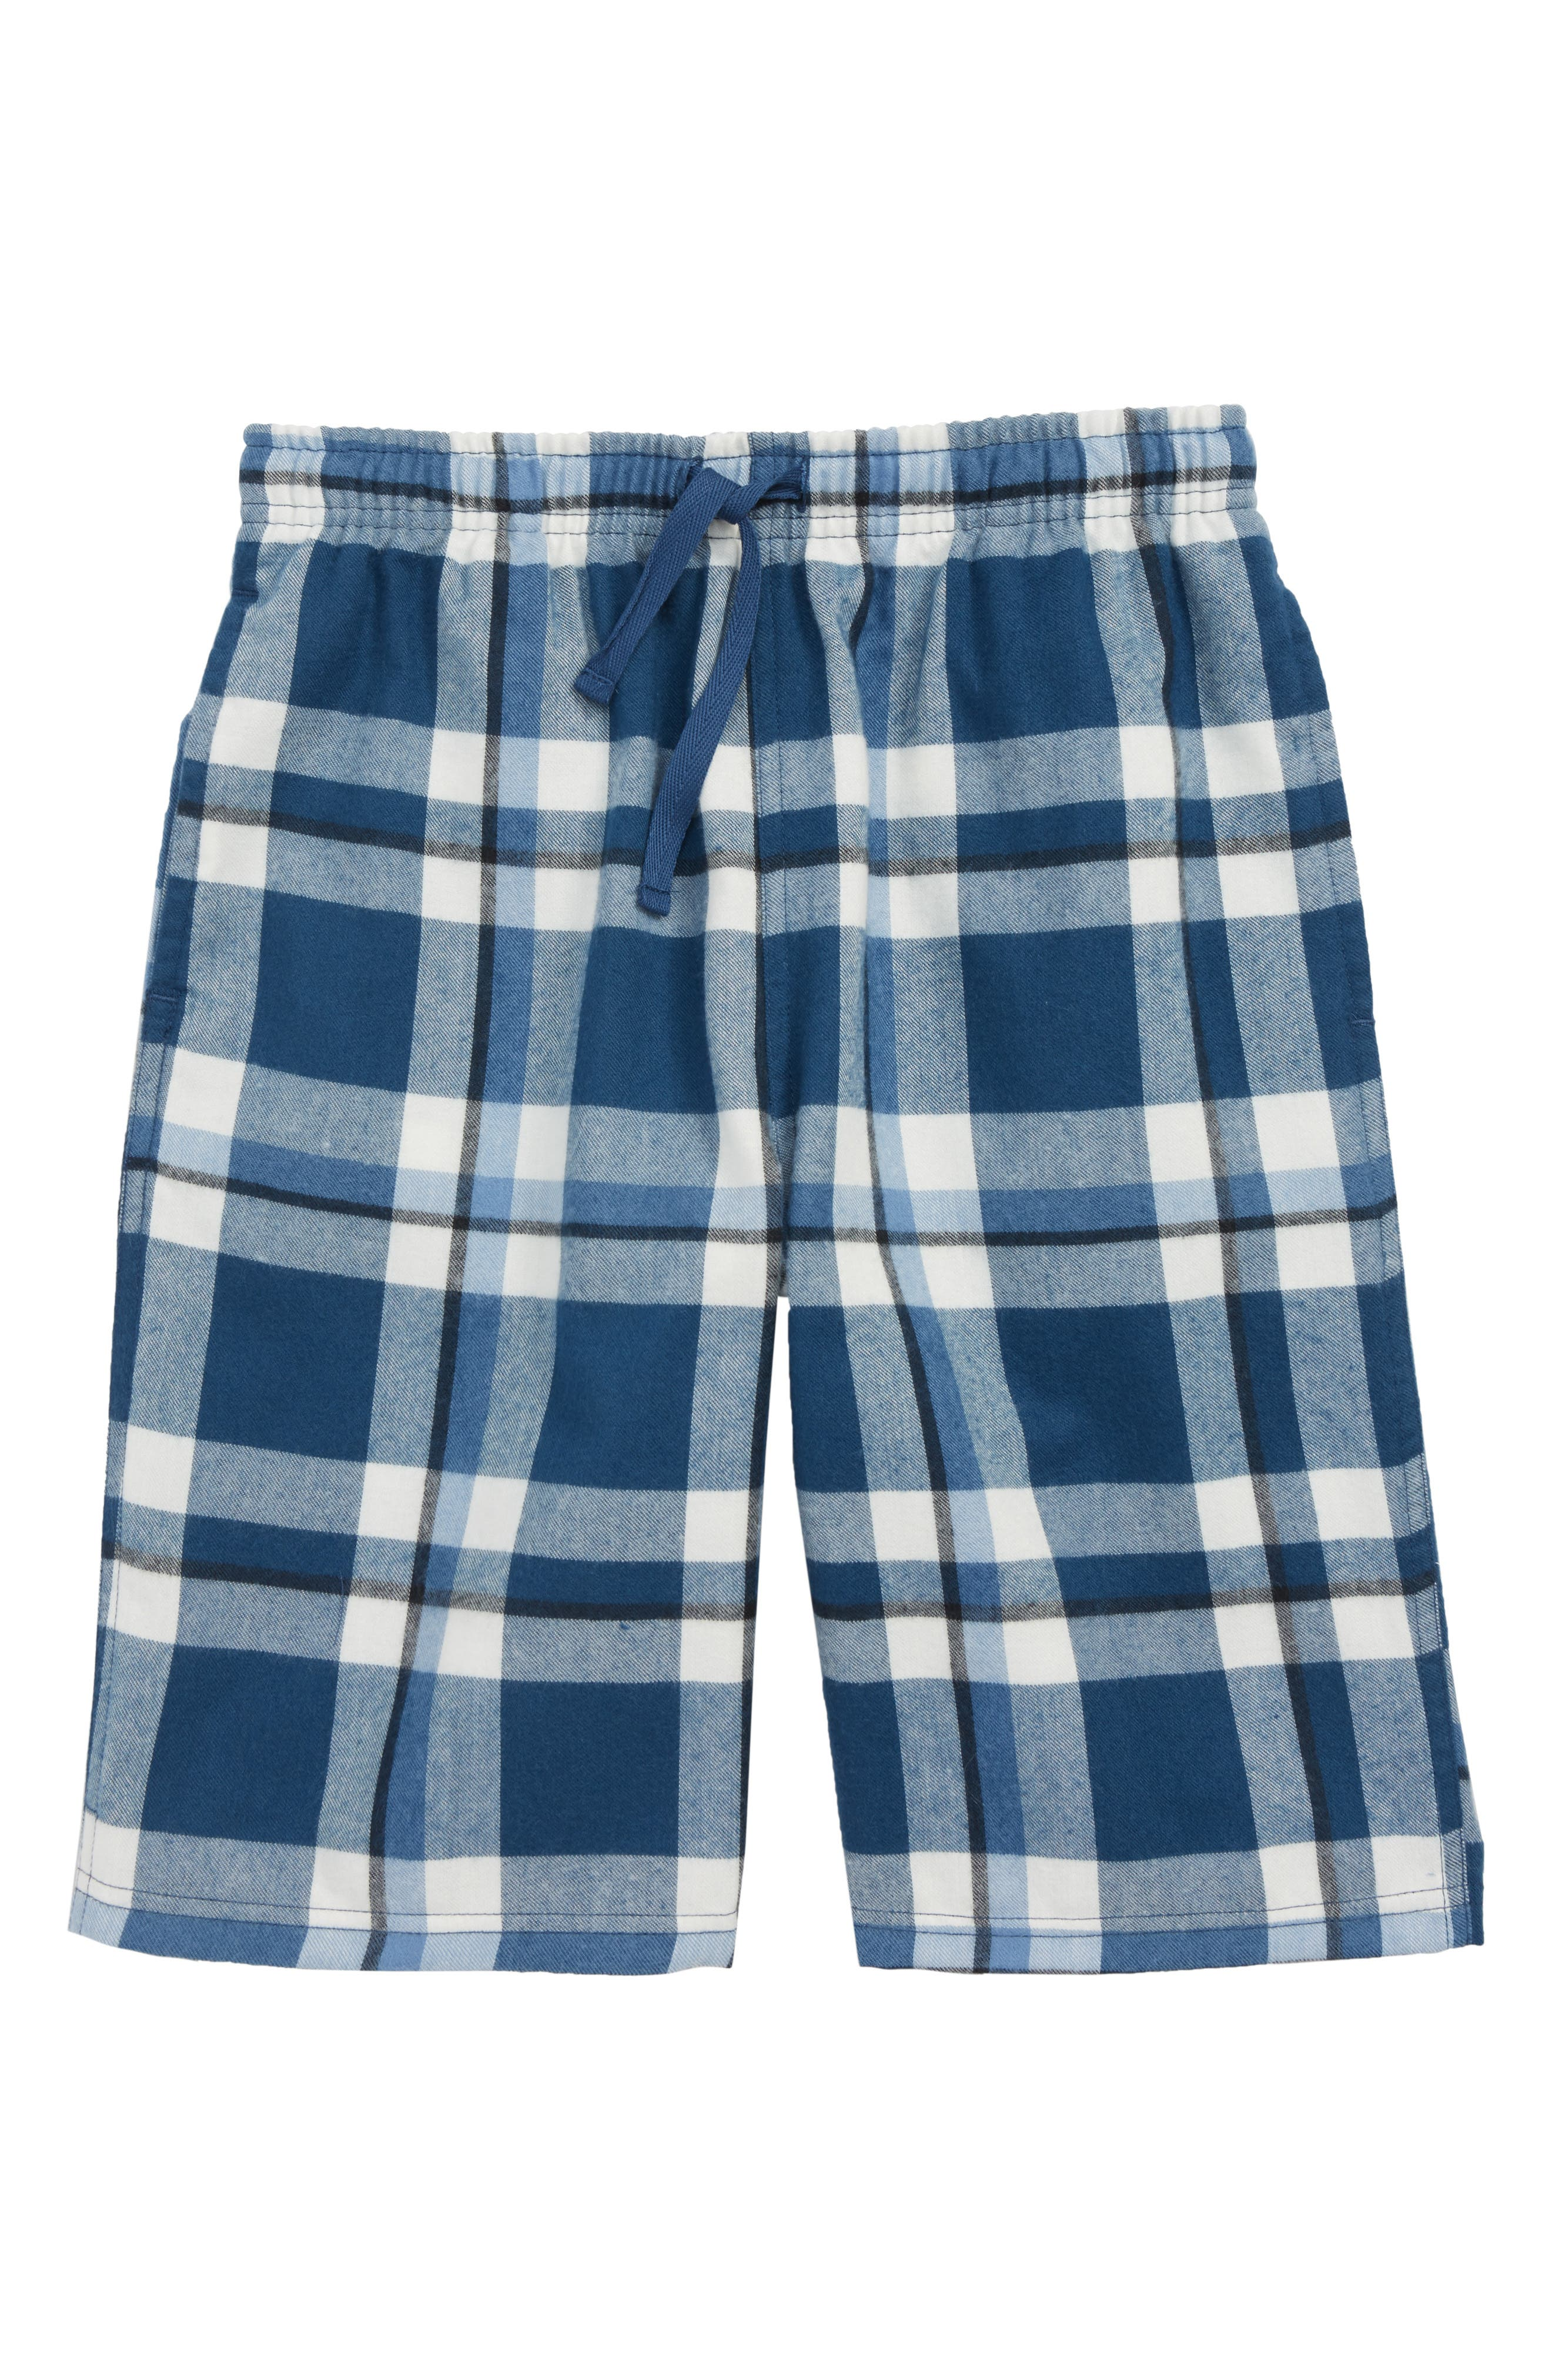 TUCKER + TATE, Plaid Flannel Sleep Shorts, Main thumbnail 1, color, 420